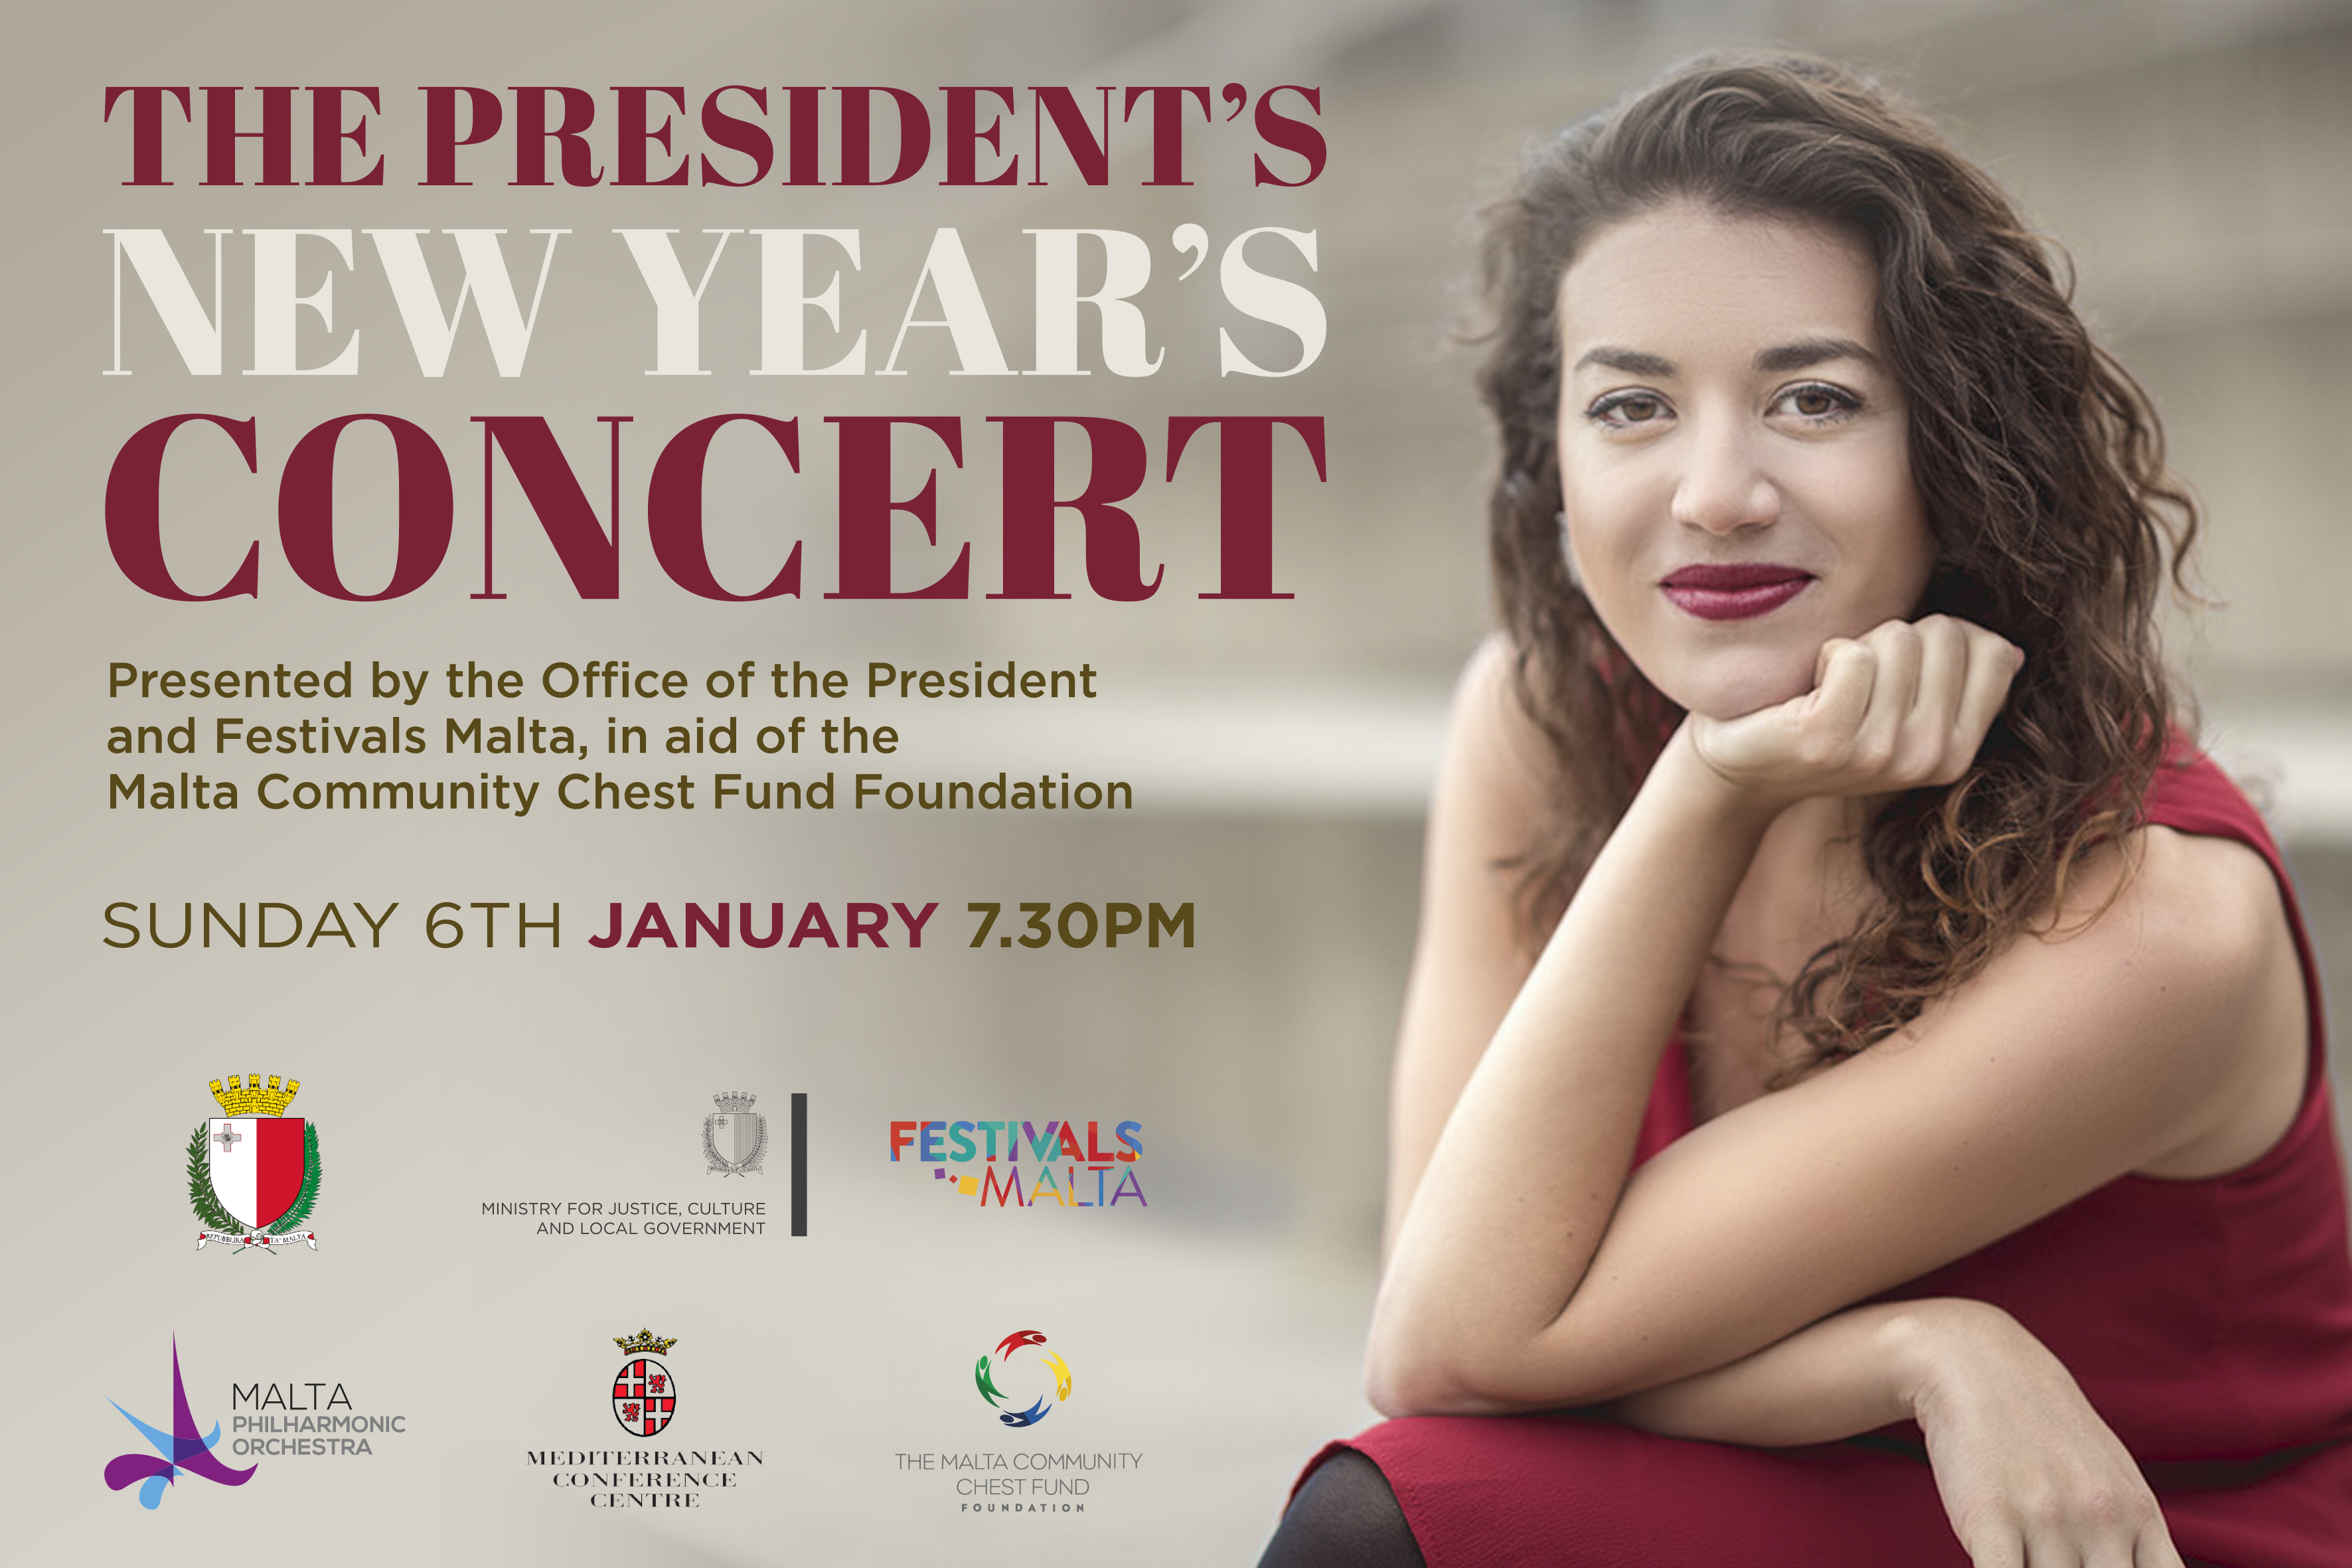 The President's New Year's Concert